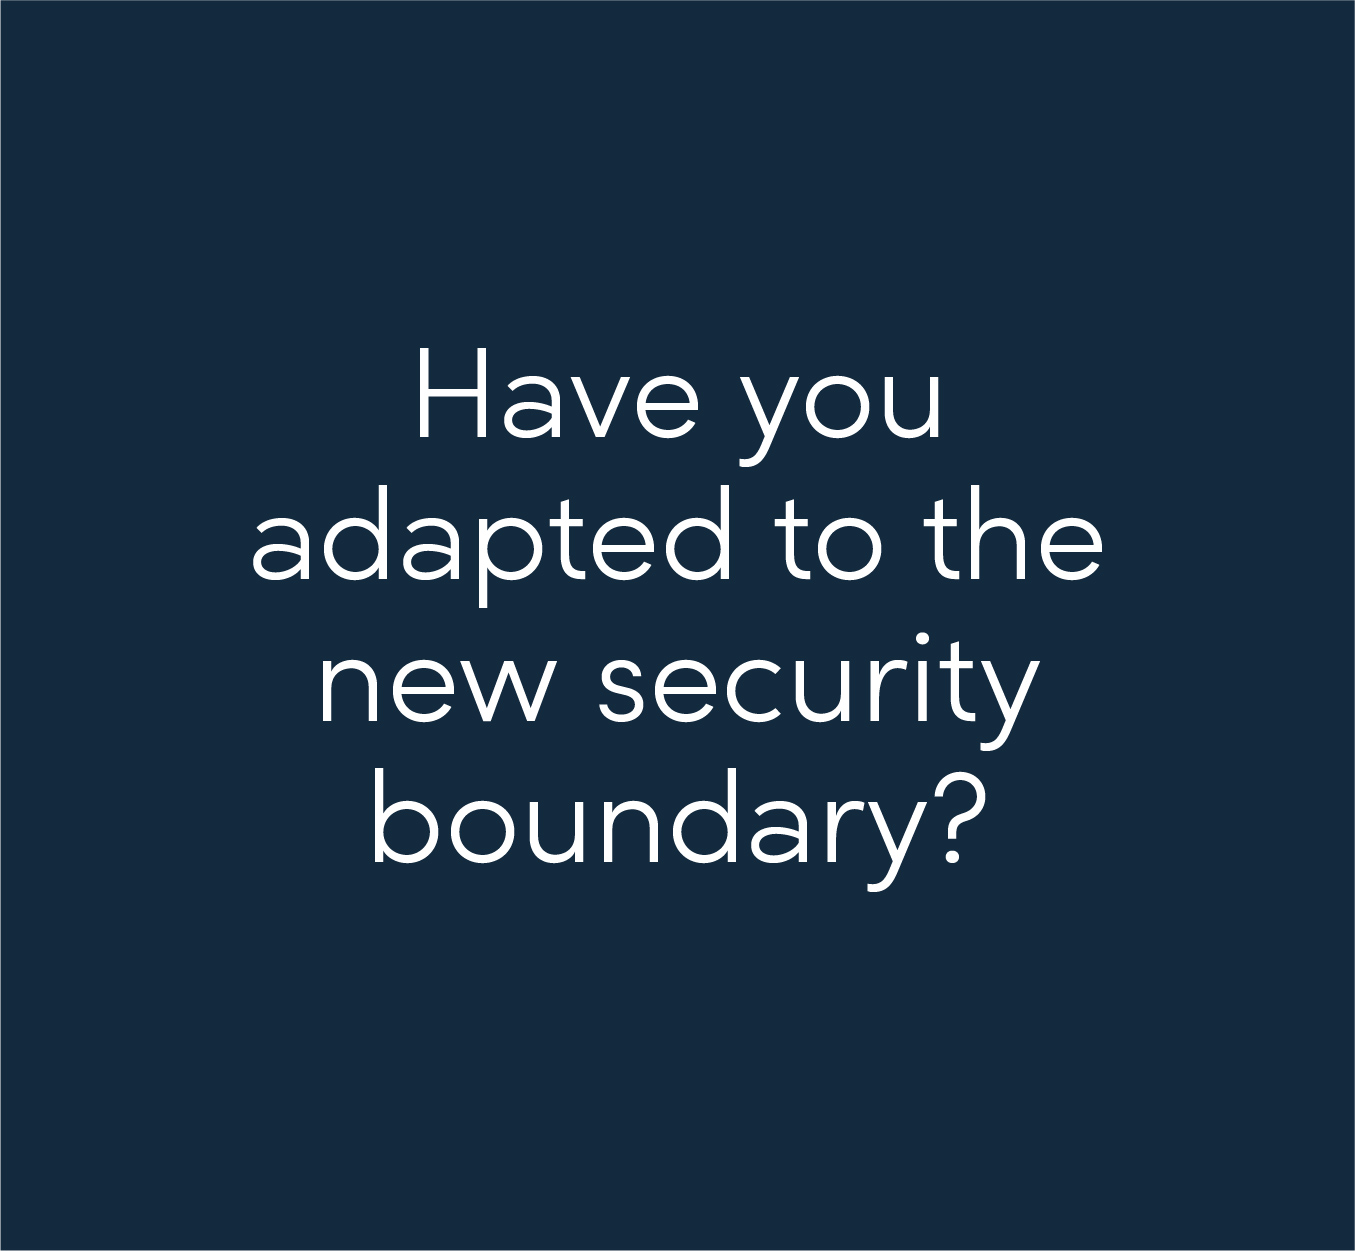 Have you adapted to the new security boundary?